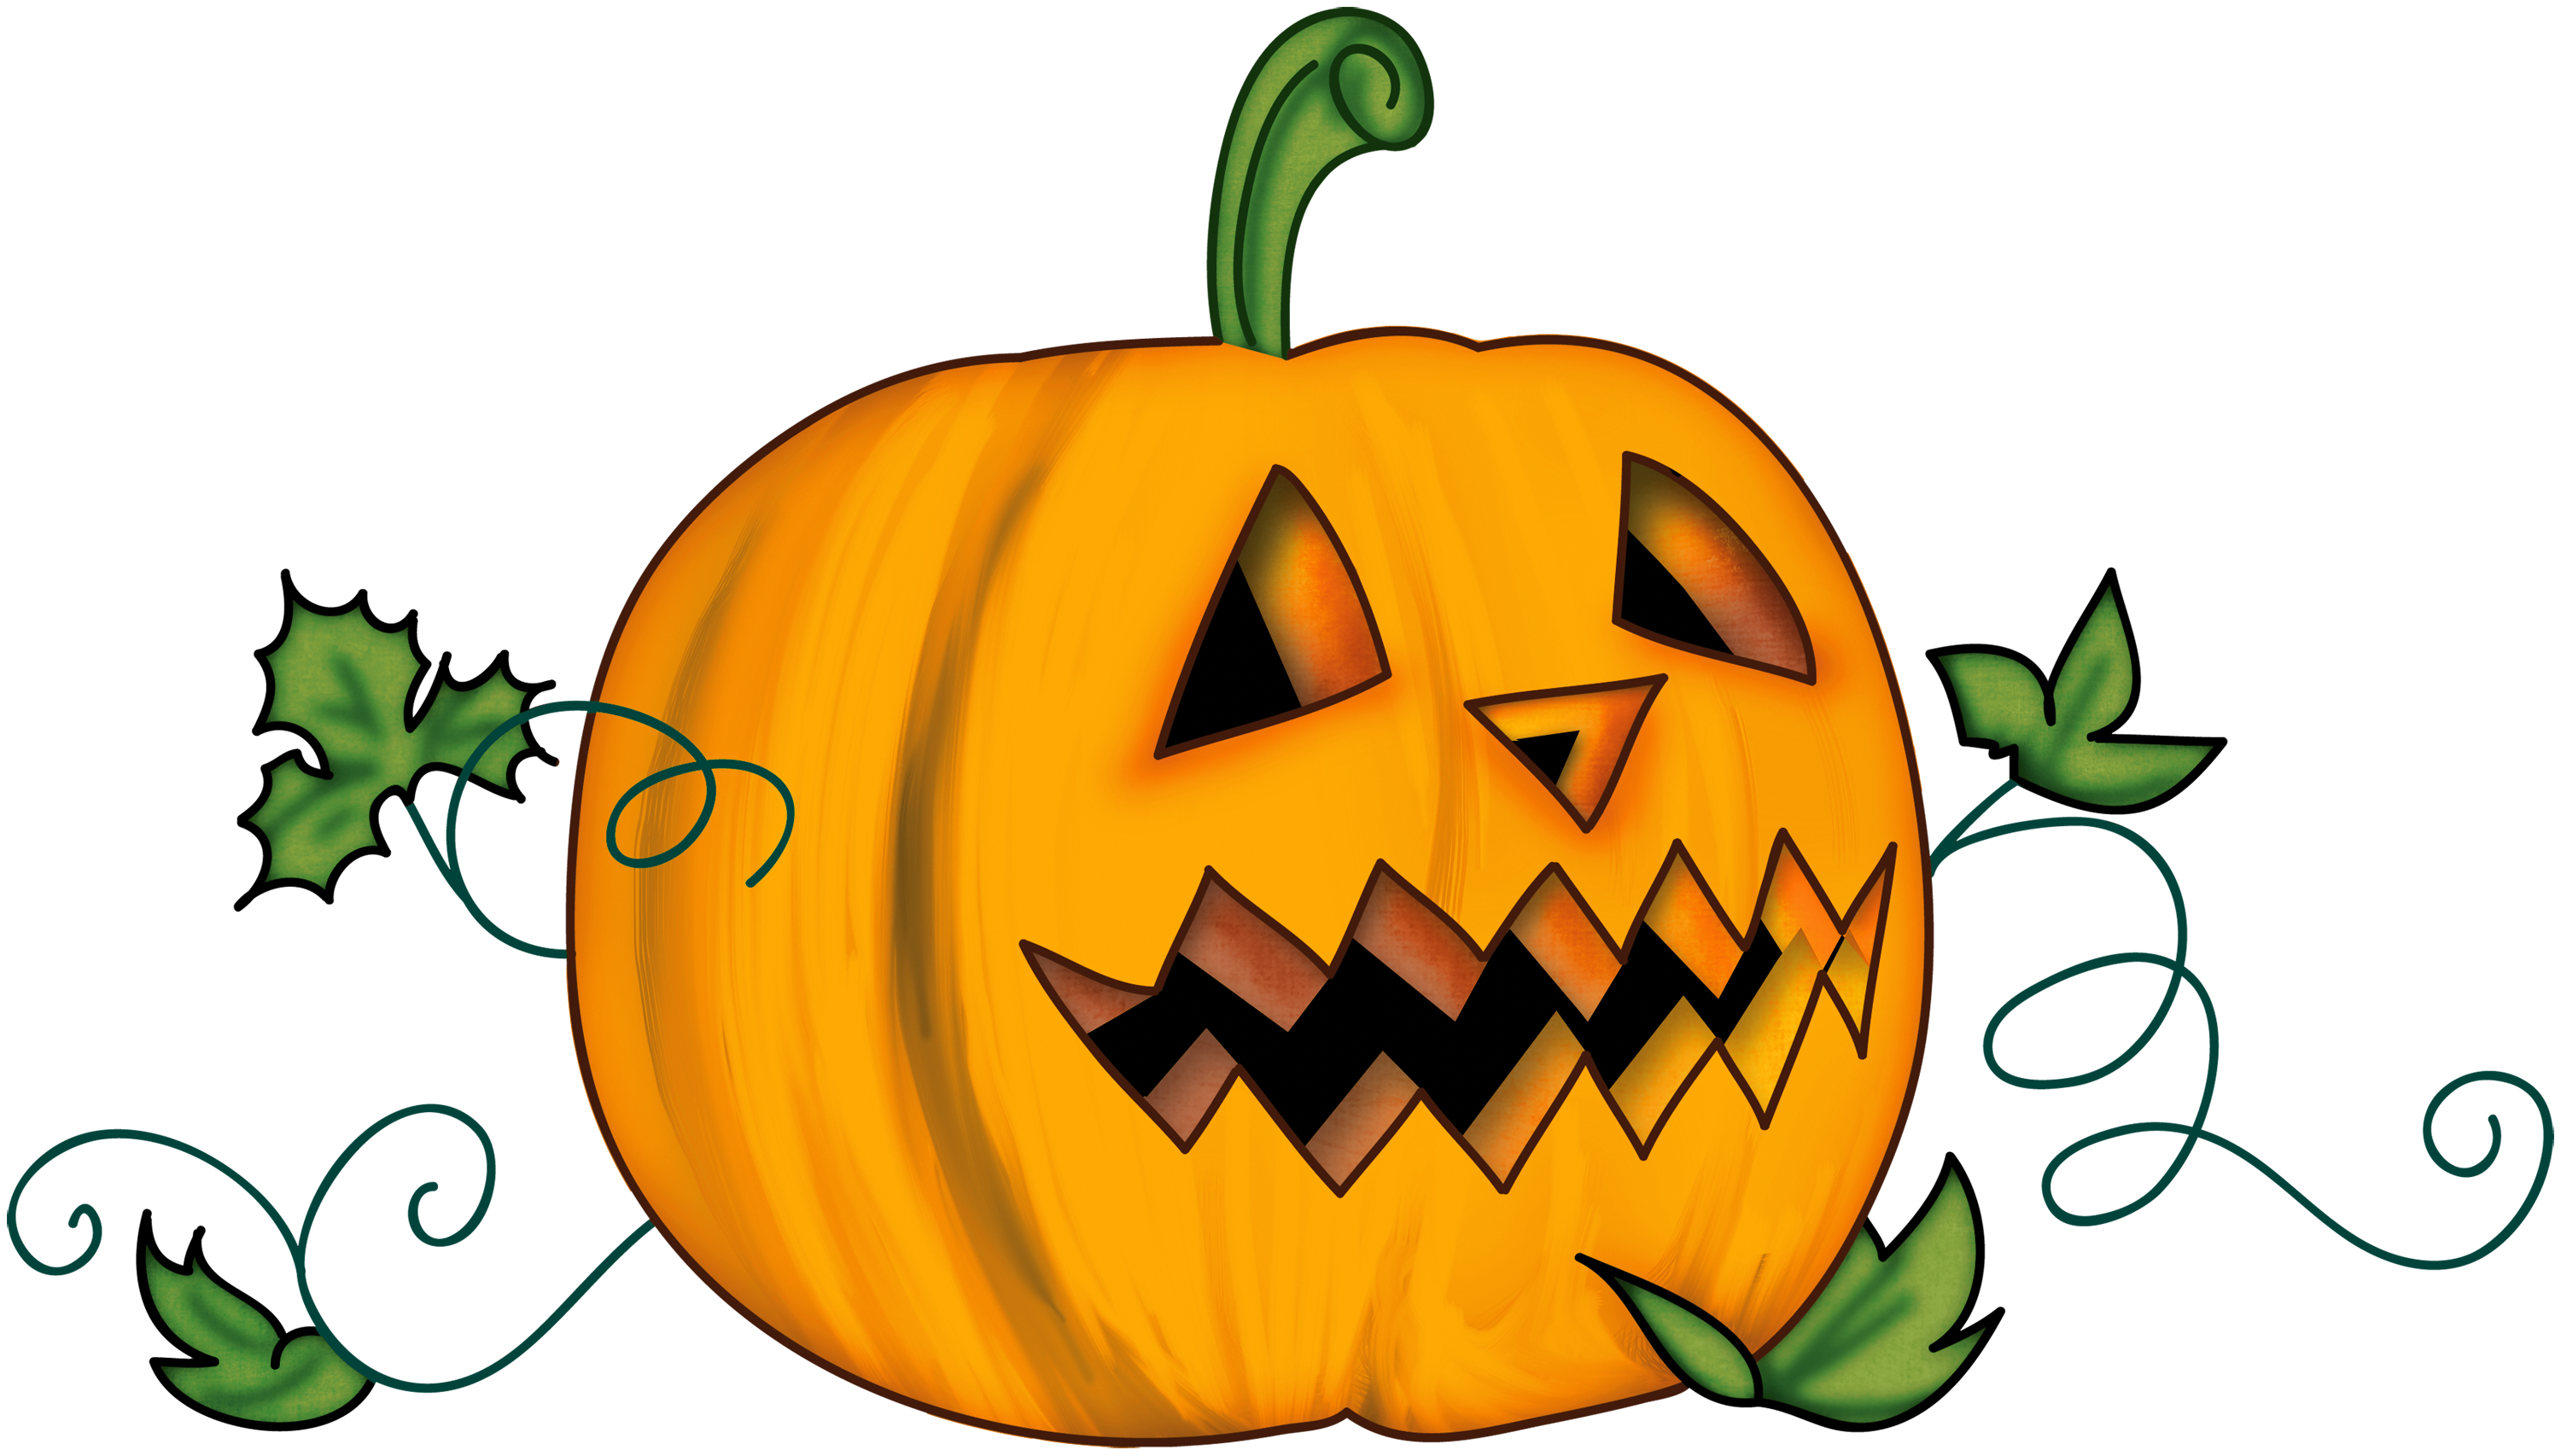 Decorative pumpkin clipart royalty free library Free Pumpkin Clipart at GetDrawings.com | Free for personal use Free ... royalty free library